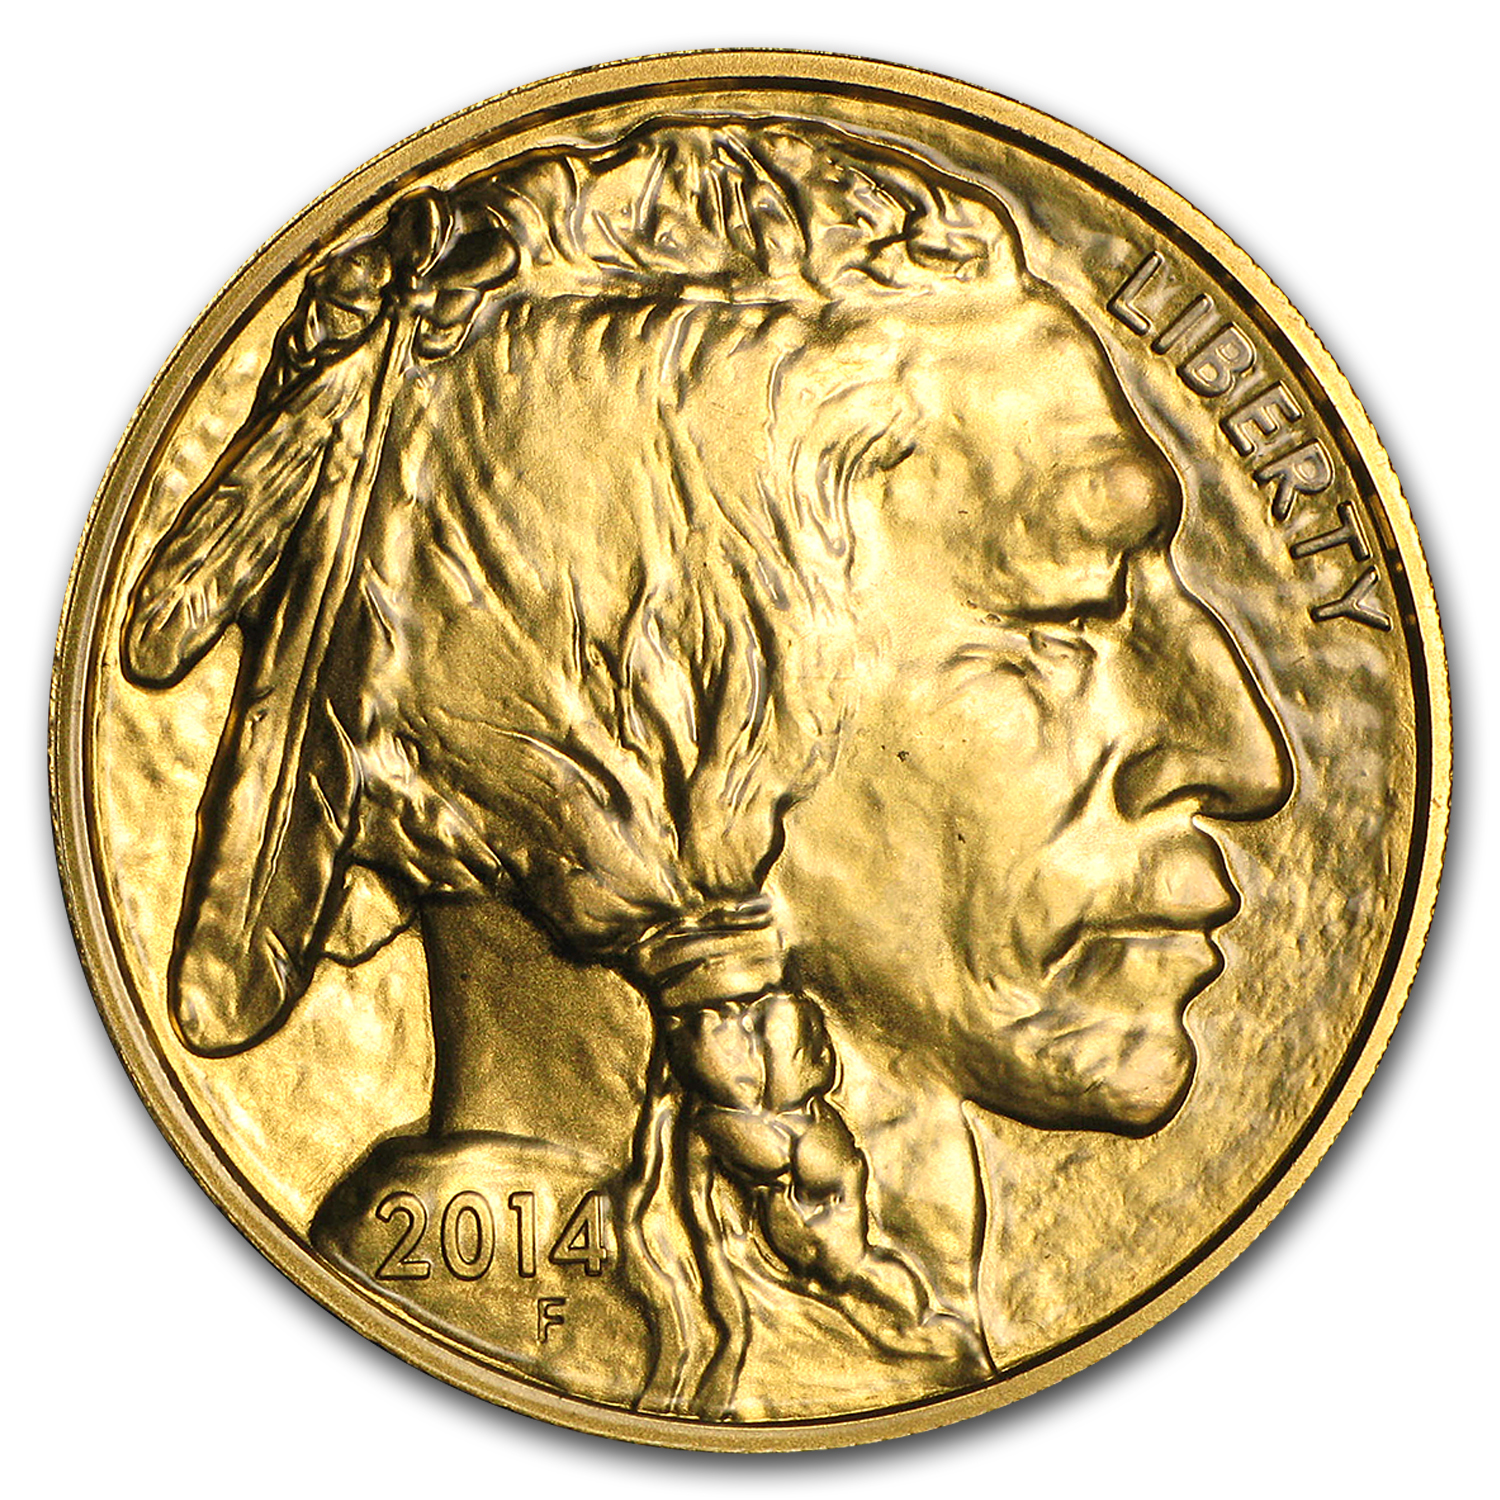 2014 1 oz Gold Buffalo BU